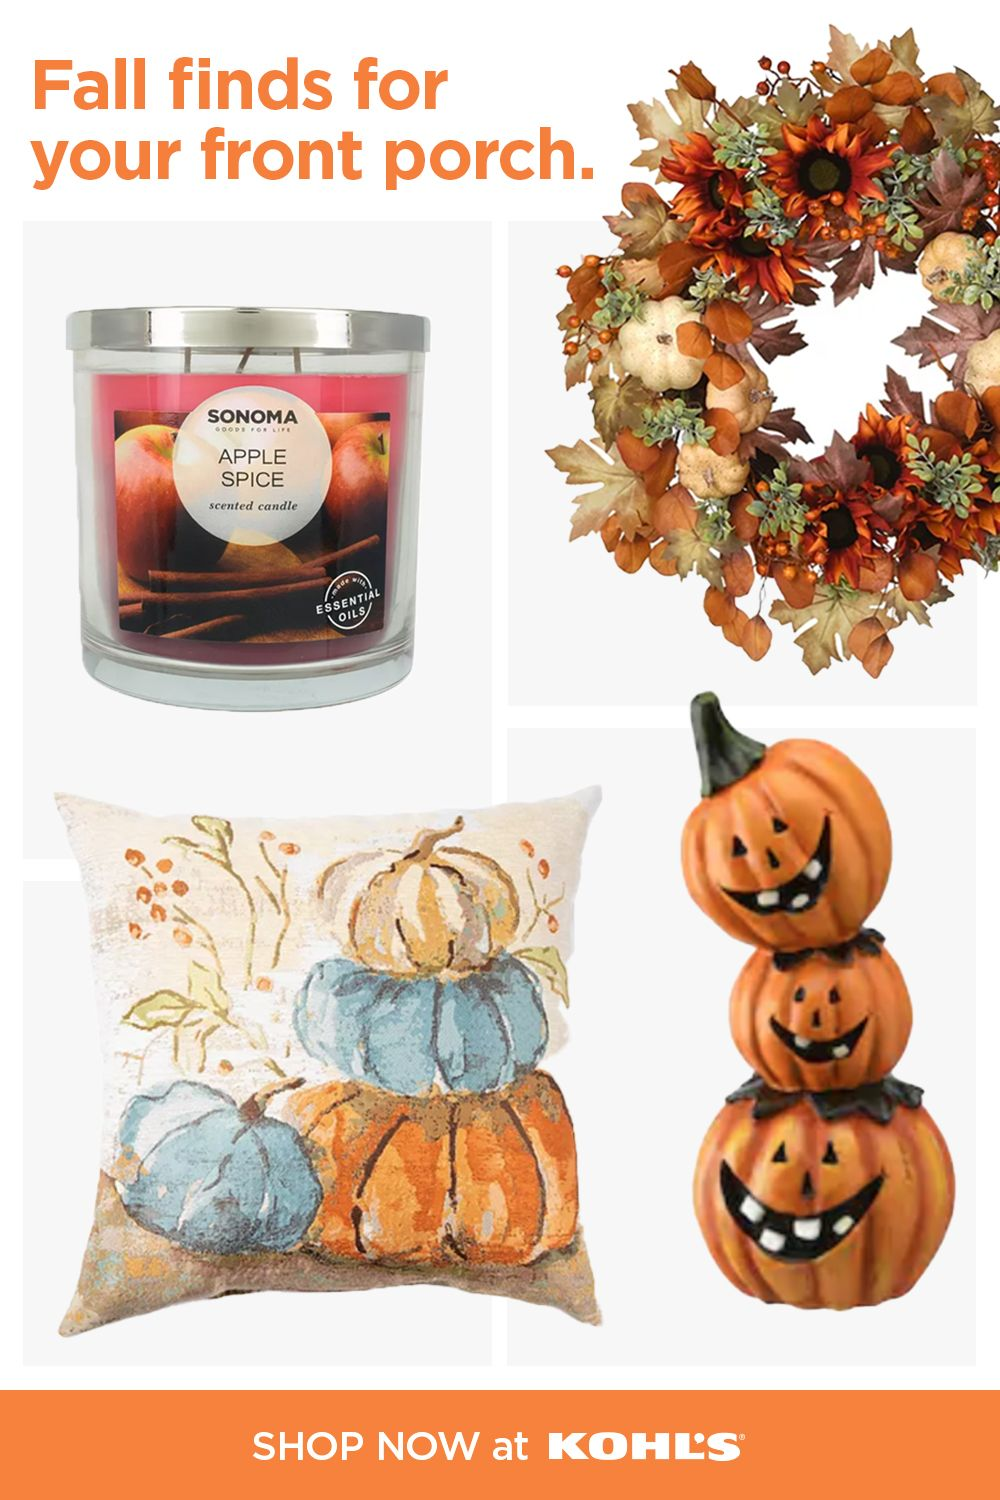 Find Festive Fall Outdoor Decor At Kohl S In 2020 Fall Crafts Diy Halloween Crafts Decorations Fall Decor Diy